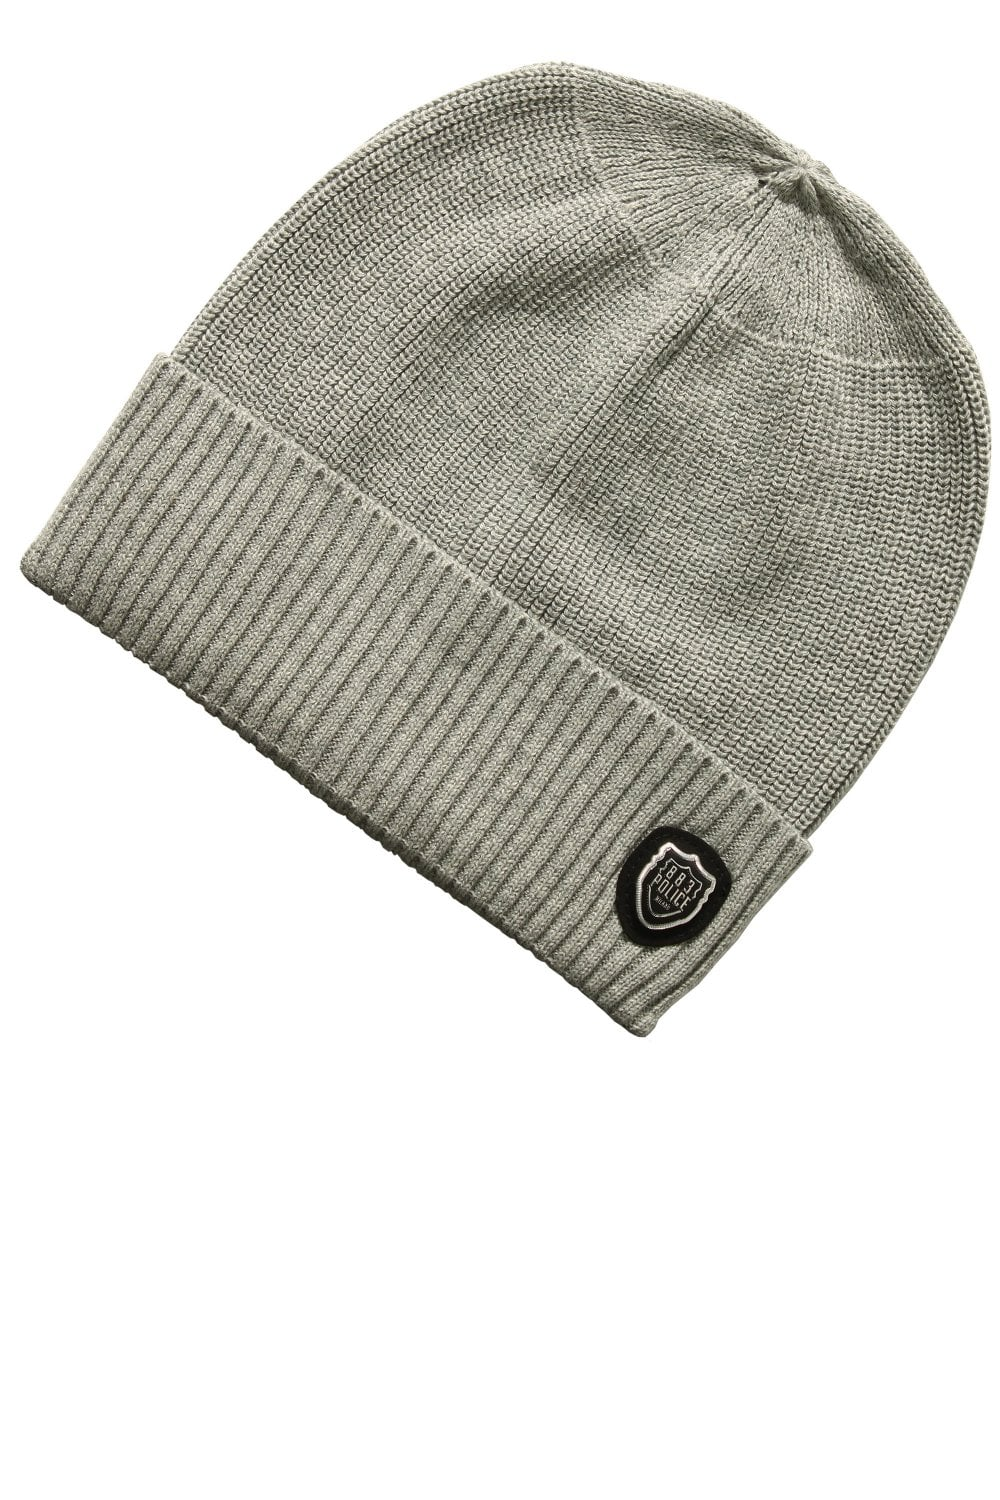 883 Police Sotto Beanie Hat  08b4eff9f40